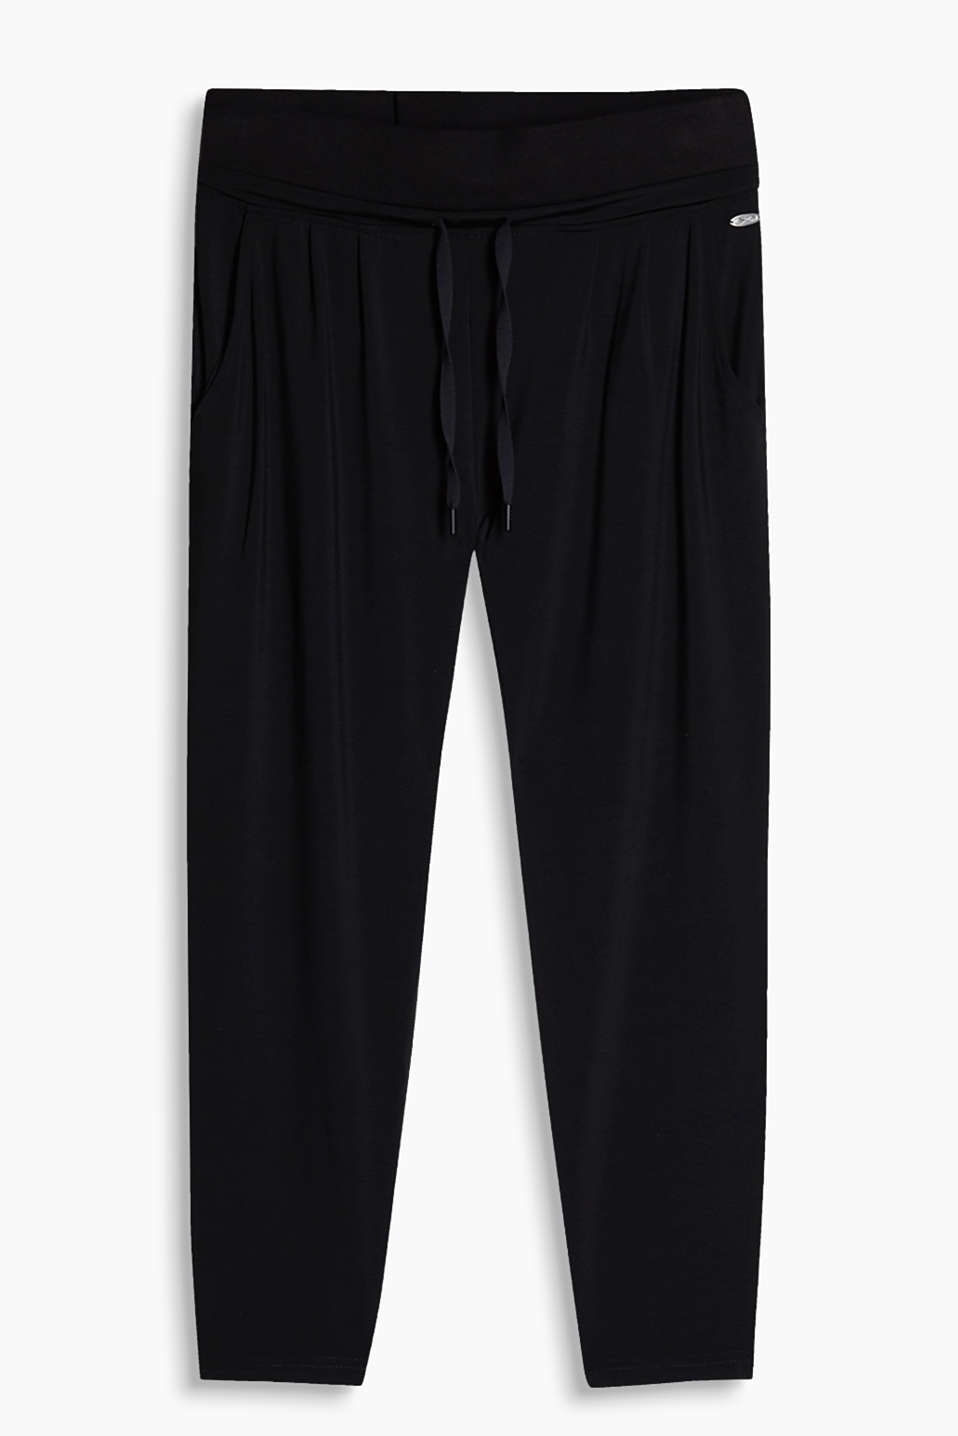 Loose capris with a wide waistband and waist pleats, made of stretchy jersey